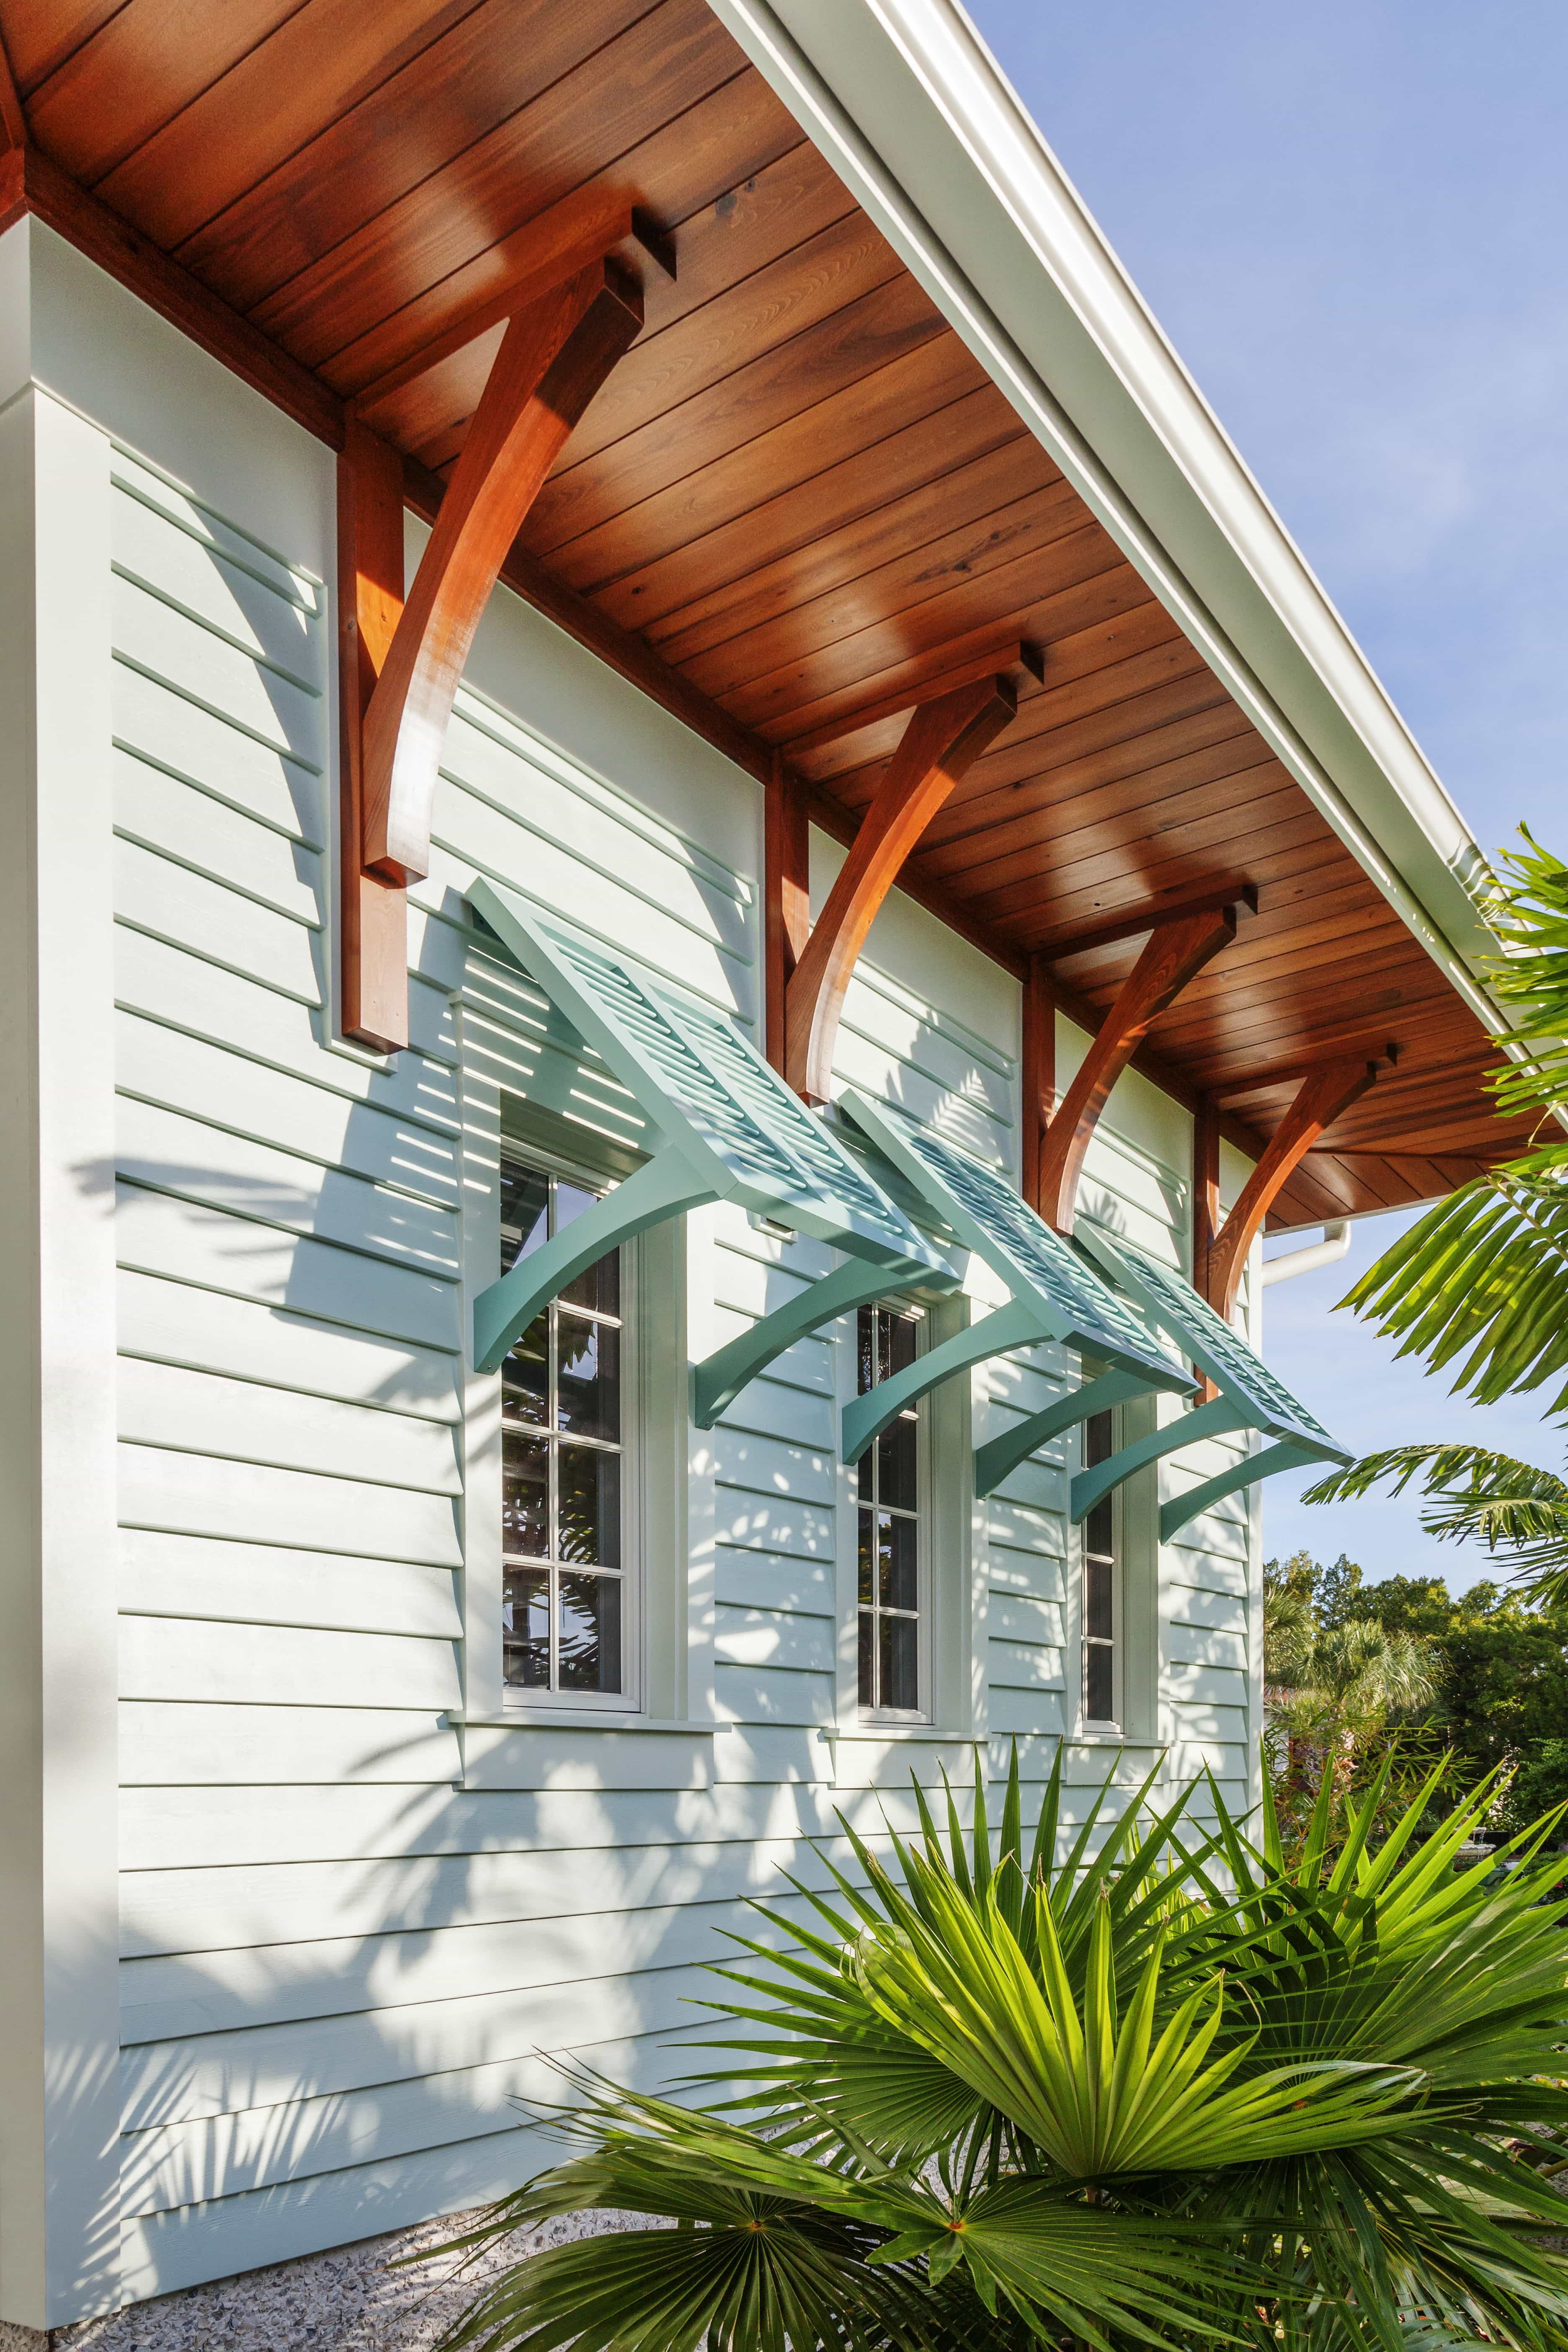 Beautiful Horizontal Siding And Colorful Bahama Shutters Color Combination (View 1 of 8)